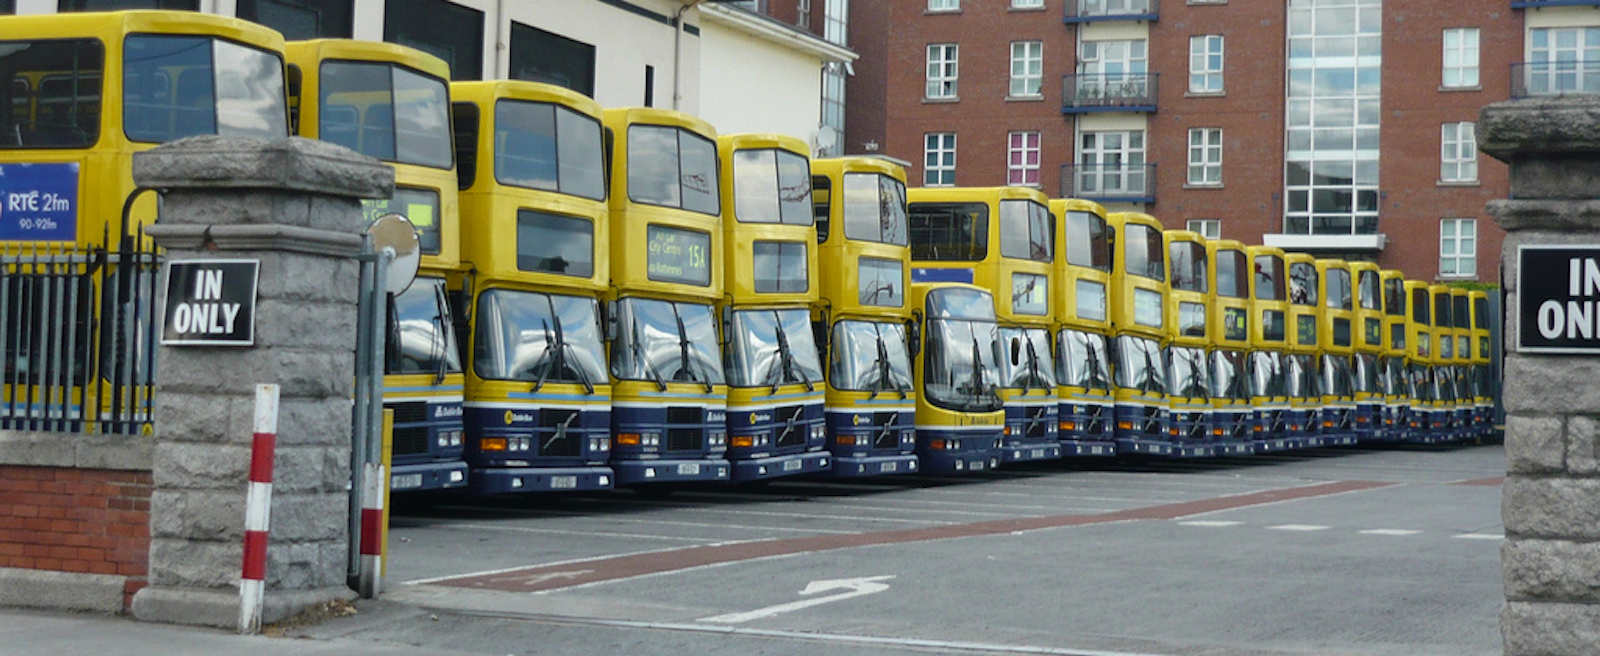 Ringsend Dublin Bus depot, in Dublin. (Photo: Wikimedia Commons)